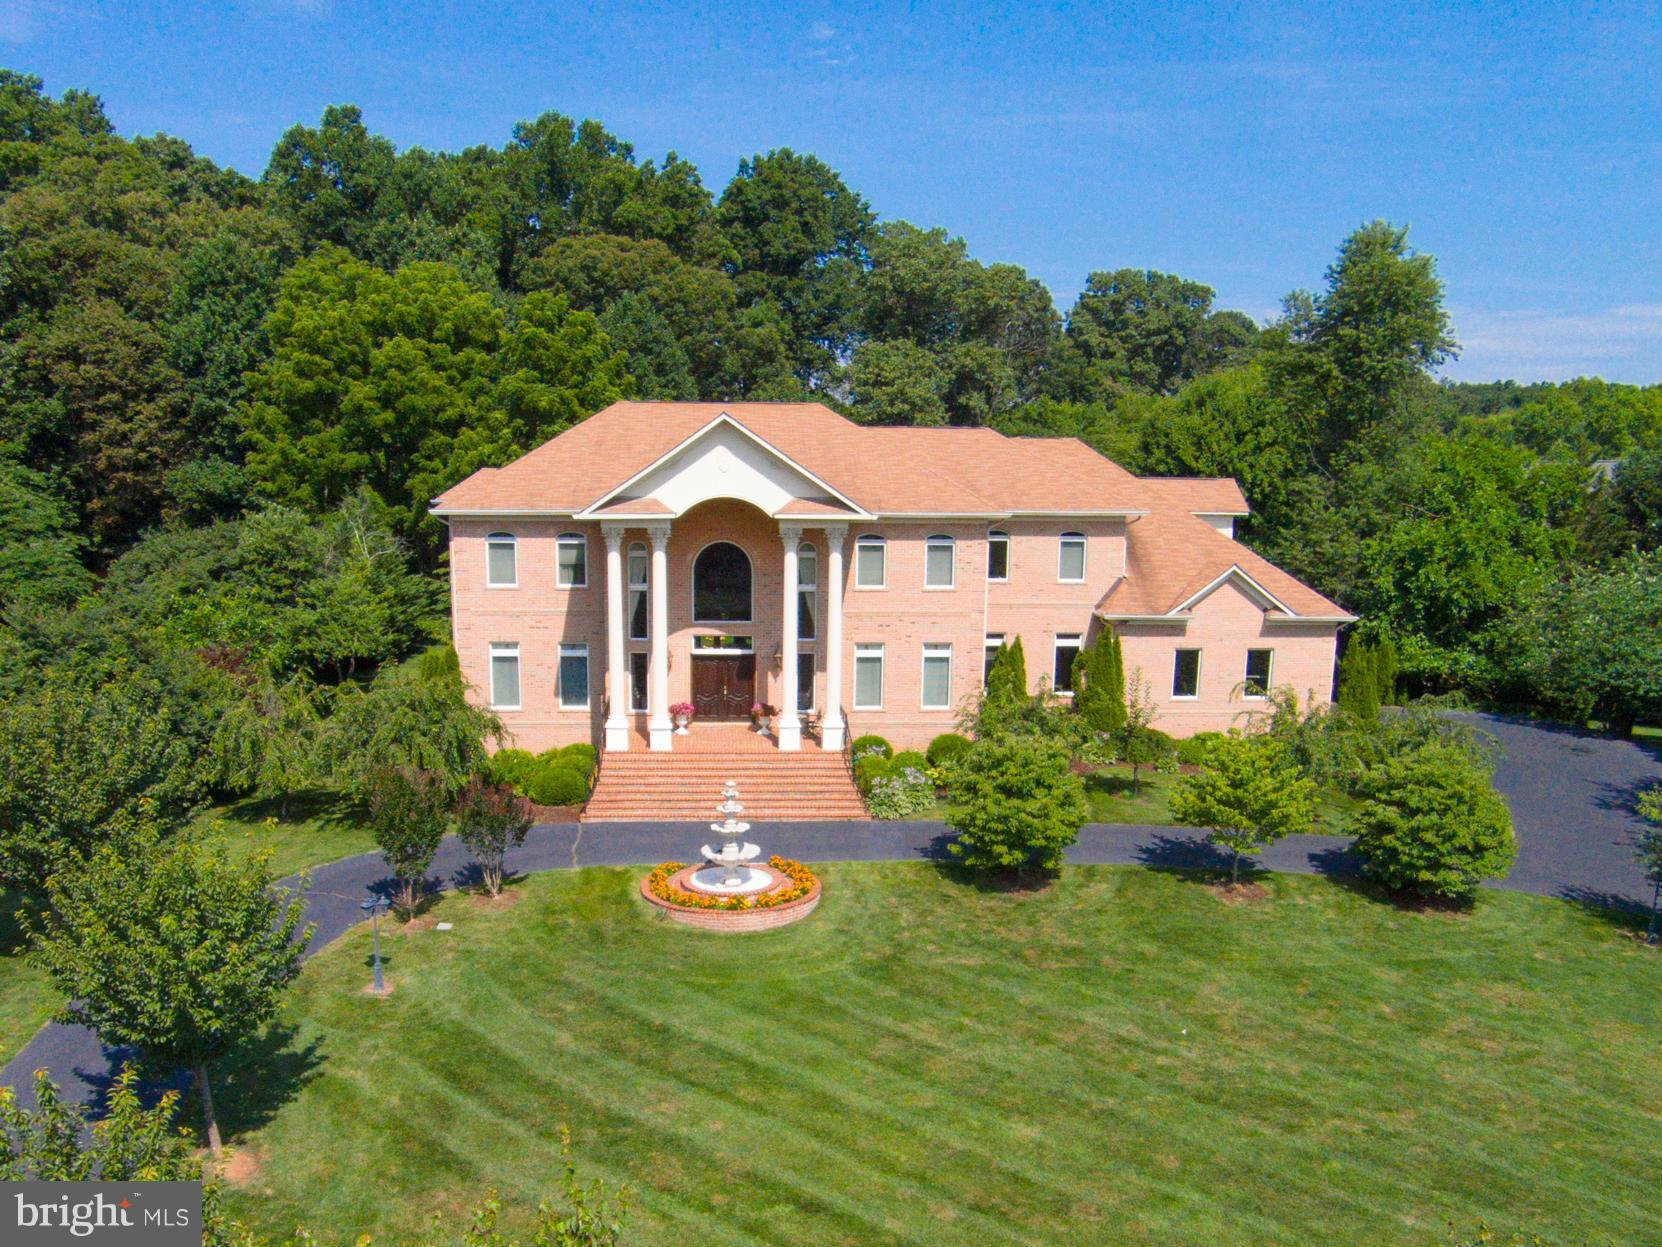 MOTIVATED SELLERS*** ALL BRICK ONE-OF-A-KIND CUSTOM MASTERPIECE, OFFERING ABOUT 9,000 SF & AN OPEN FLRPLAN* GRACIOUS CIRCULAR DRIVE, 3 CAR GARAGE*EMBASSY SIZE ROOMS, IDEAL FOR PARTIES*6 BR, 6.5 BATHS, INCLUDING MAIN LVL GUEST SUITE* ELEVATOR  TO ALL 3 LVLS*4 GAS FP, INCL MBR*ALL BR'S OFFER BATH ENSUITE* BREATHTAKING LANDSCAPING*5 MINS TO I-66, VIENNA METRO*NO EXPENSE HAS BEEN SPARED!